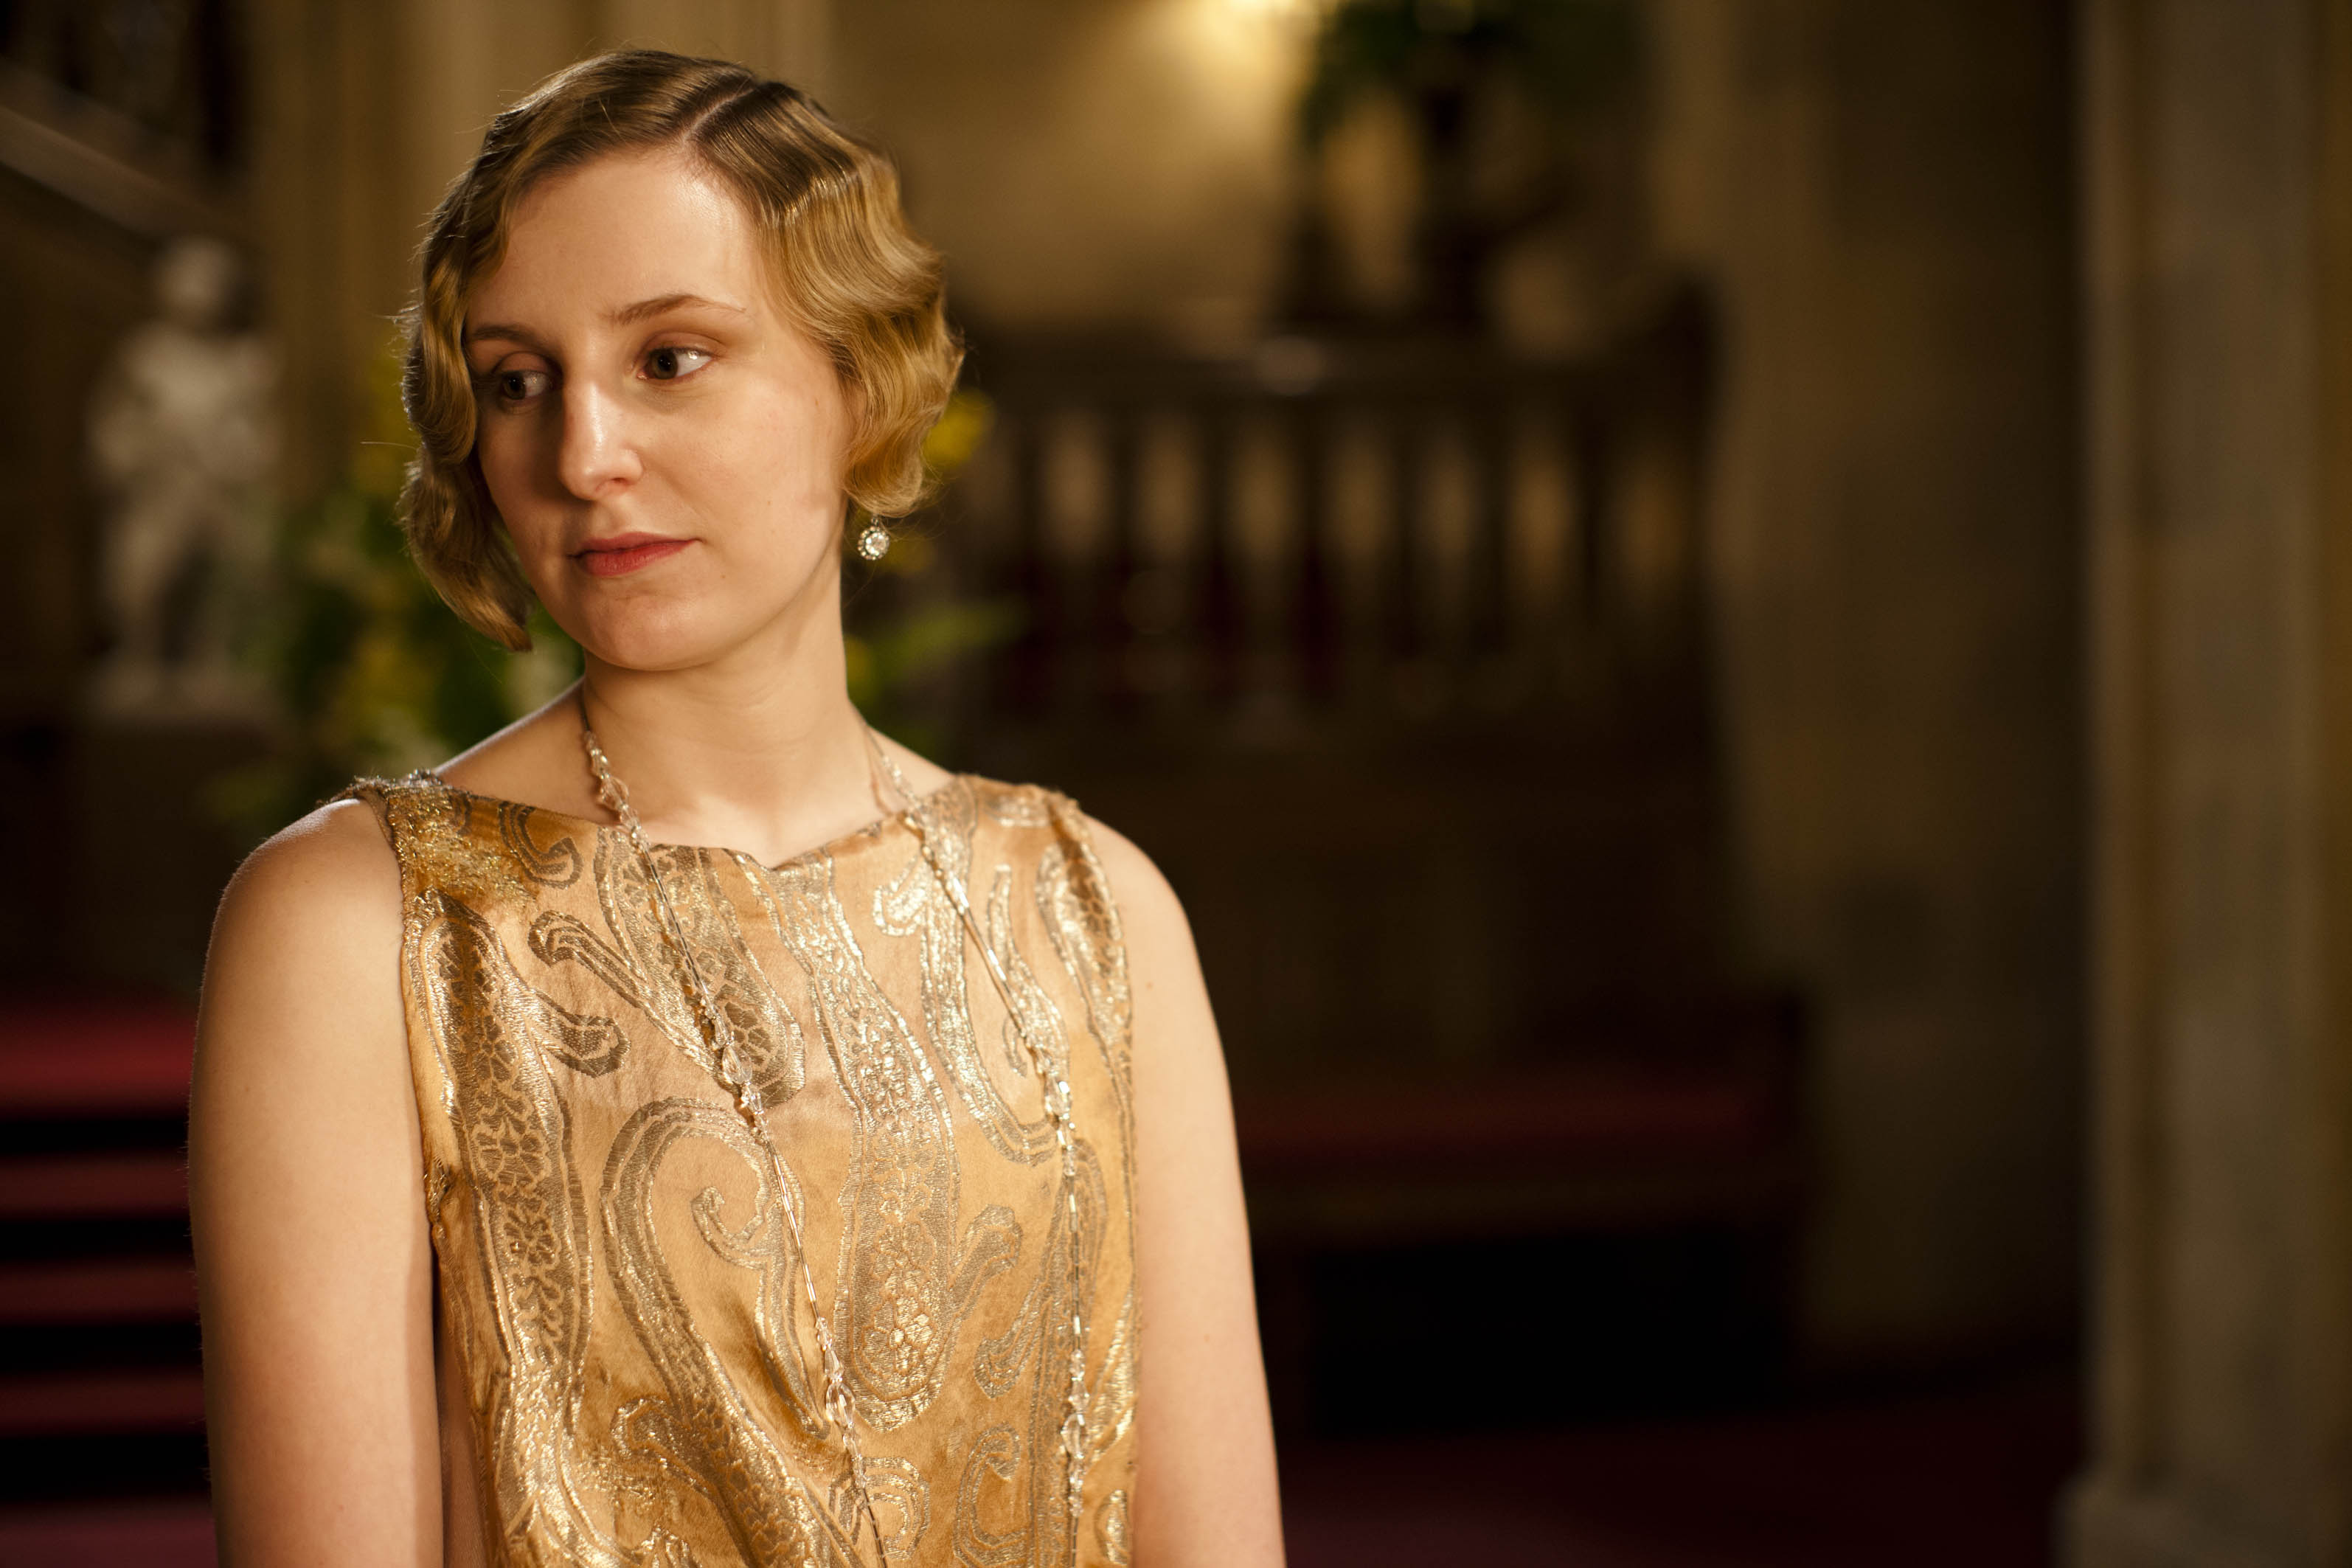 Lady edith crawley images season 3 hd wallpaper and background photos